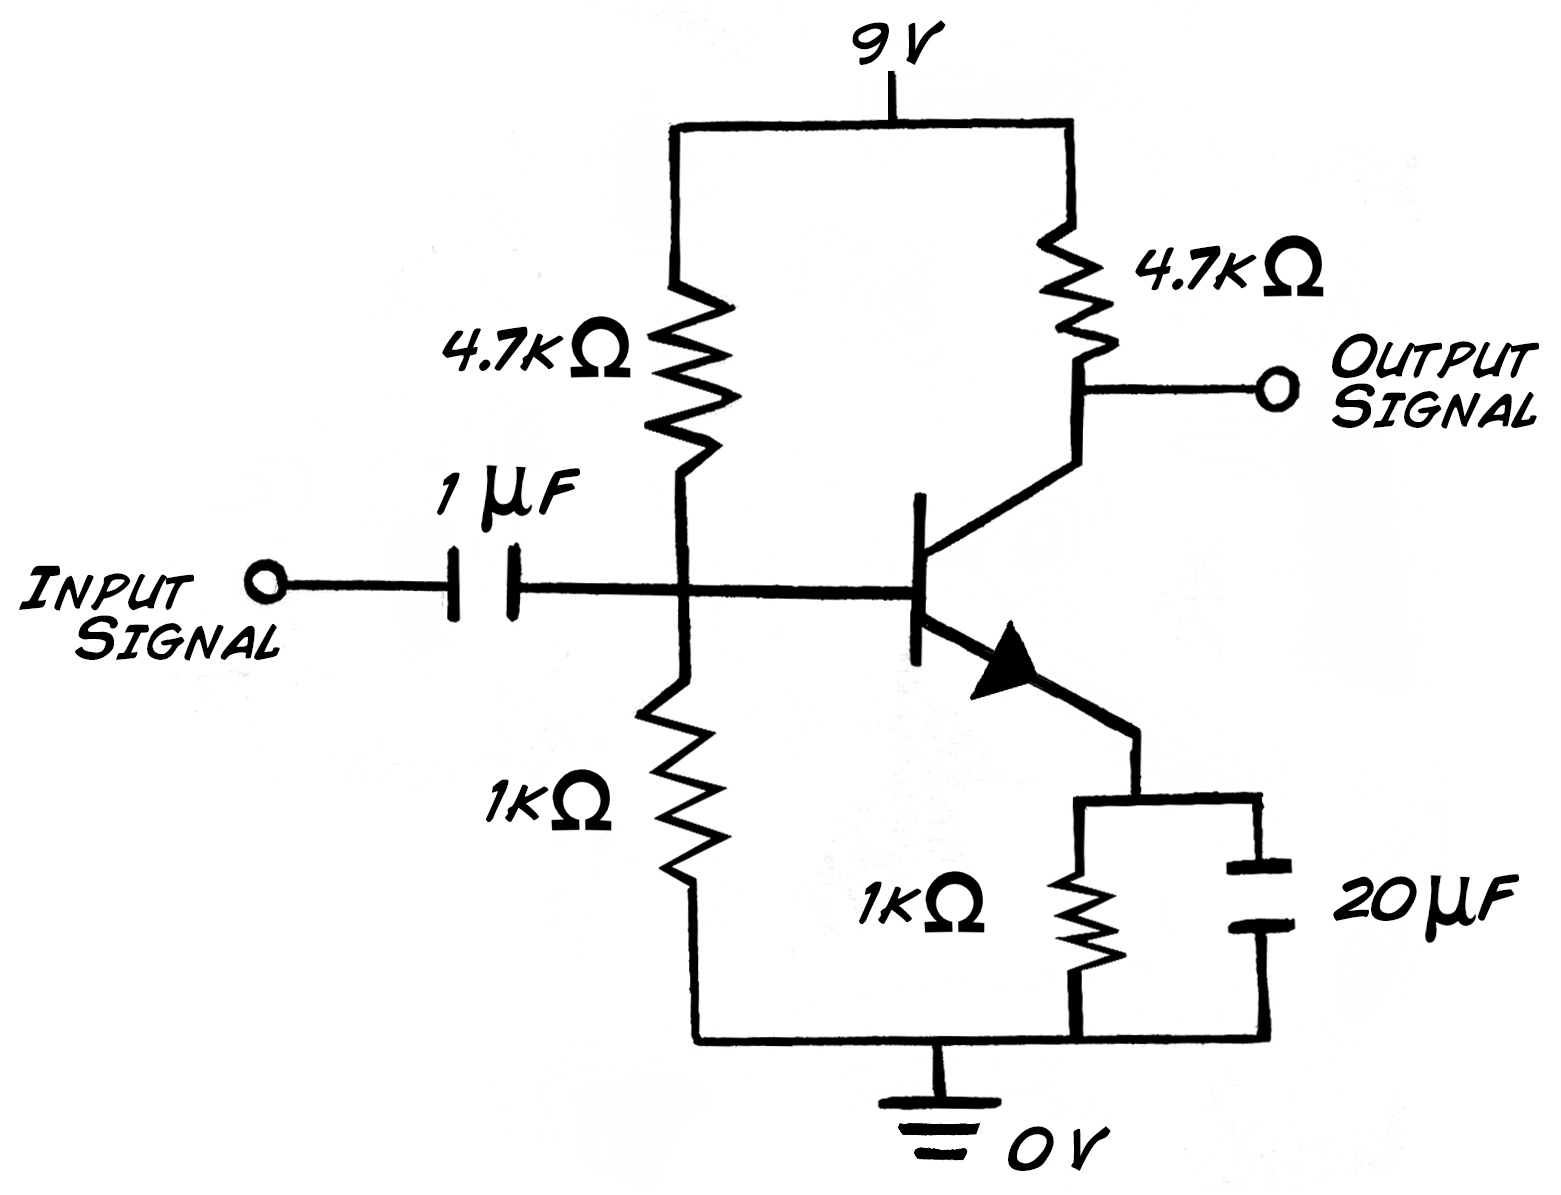 Circuit Diagram Transistor Wire Data Schema 220 Heater Wiring Http Wwwjustanswercom Electrical 4z4jj Experiment Design Rh Backyardbrains Com As A Switch Schematic Amplifier